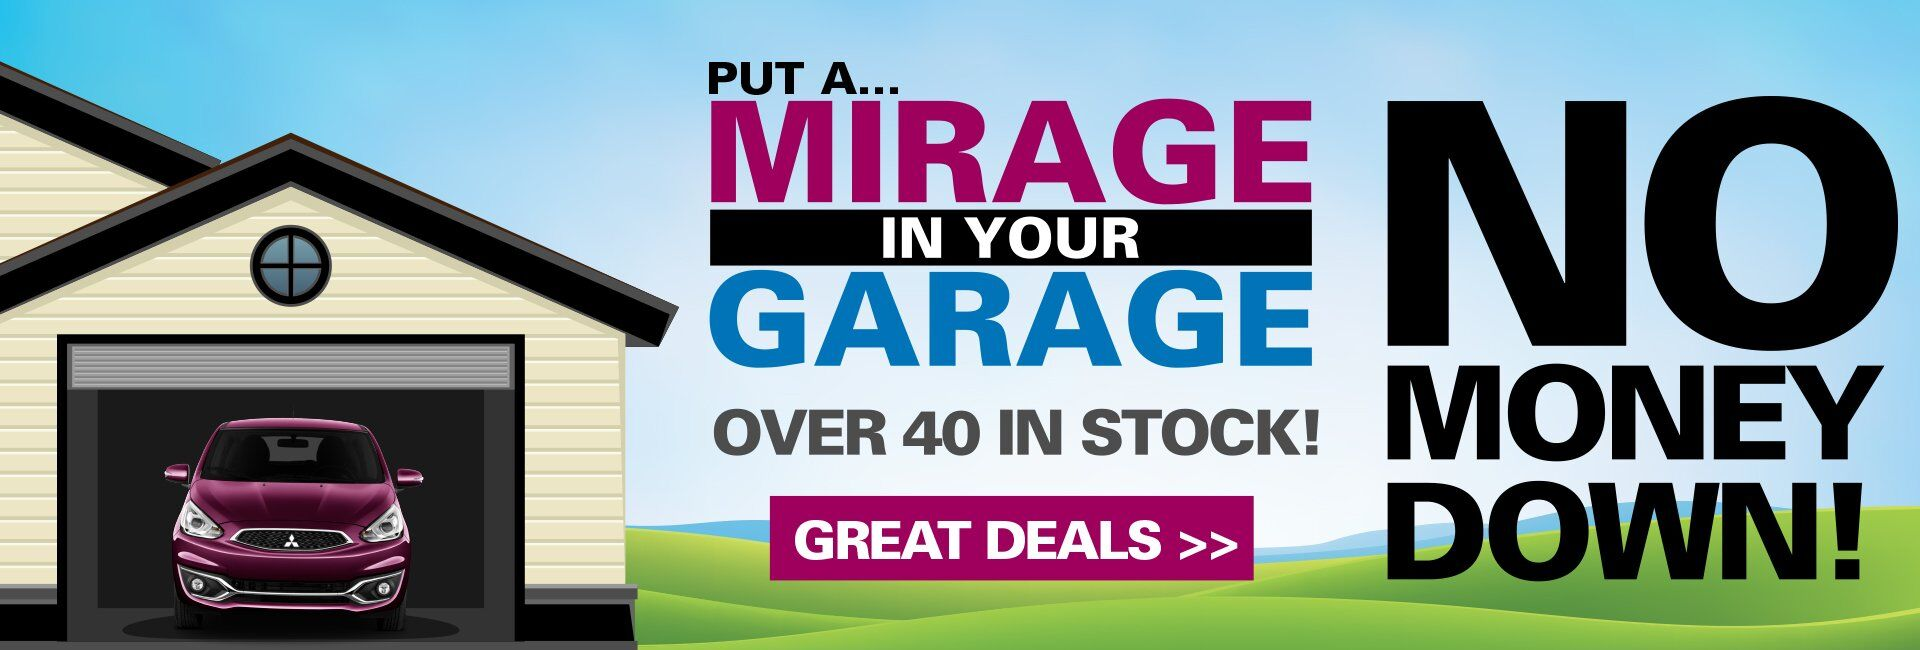 Put a Mirage in your Garage!